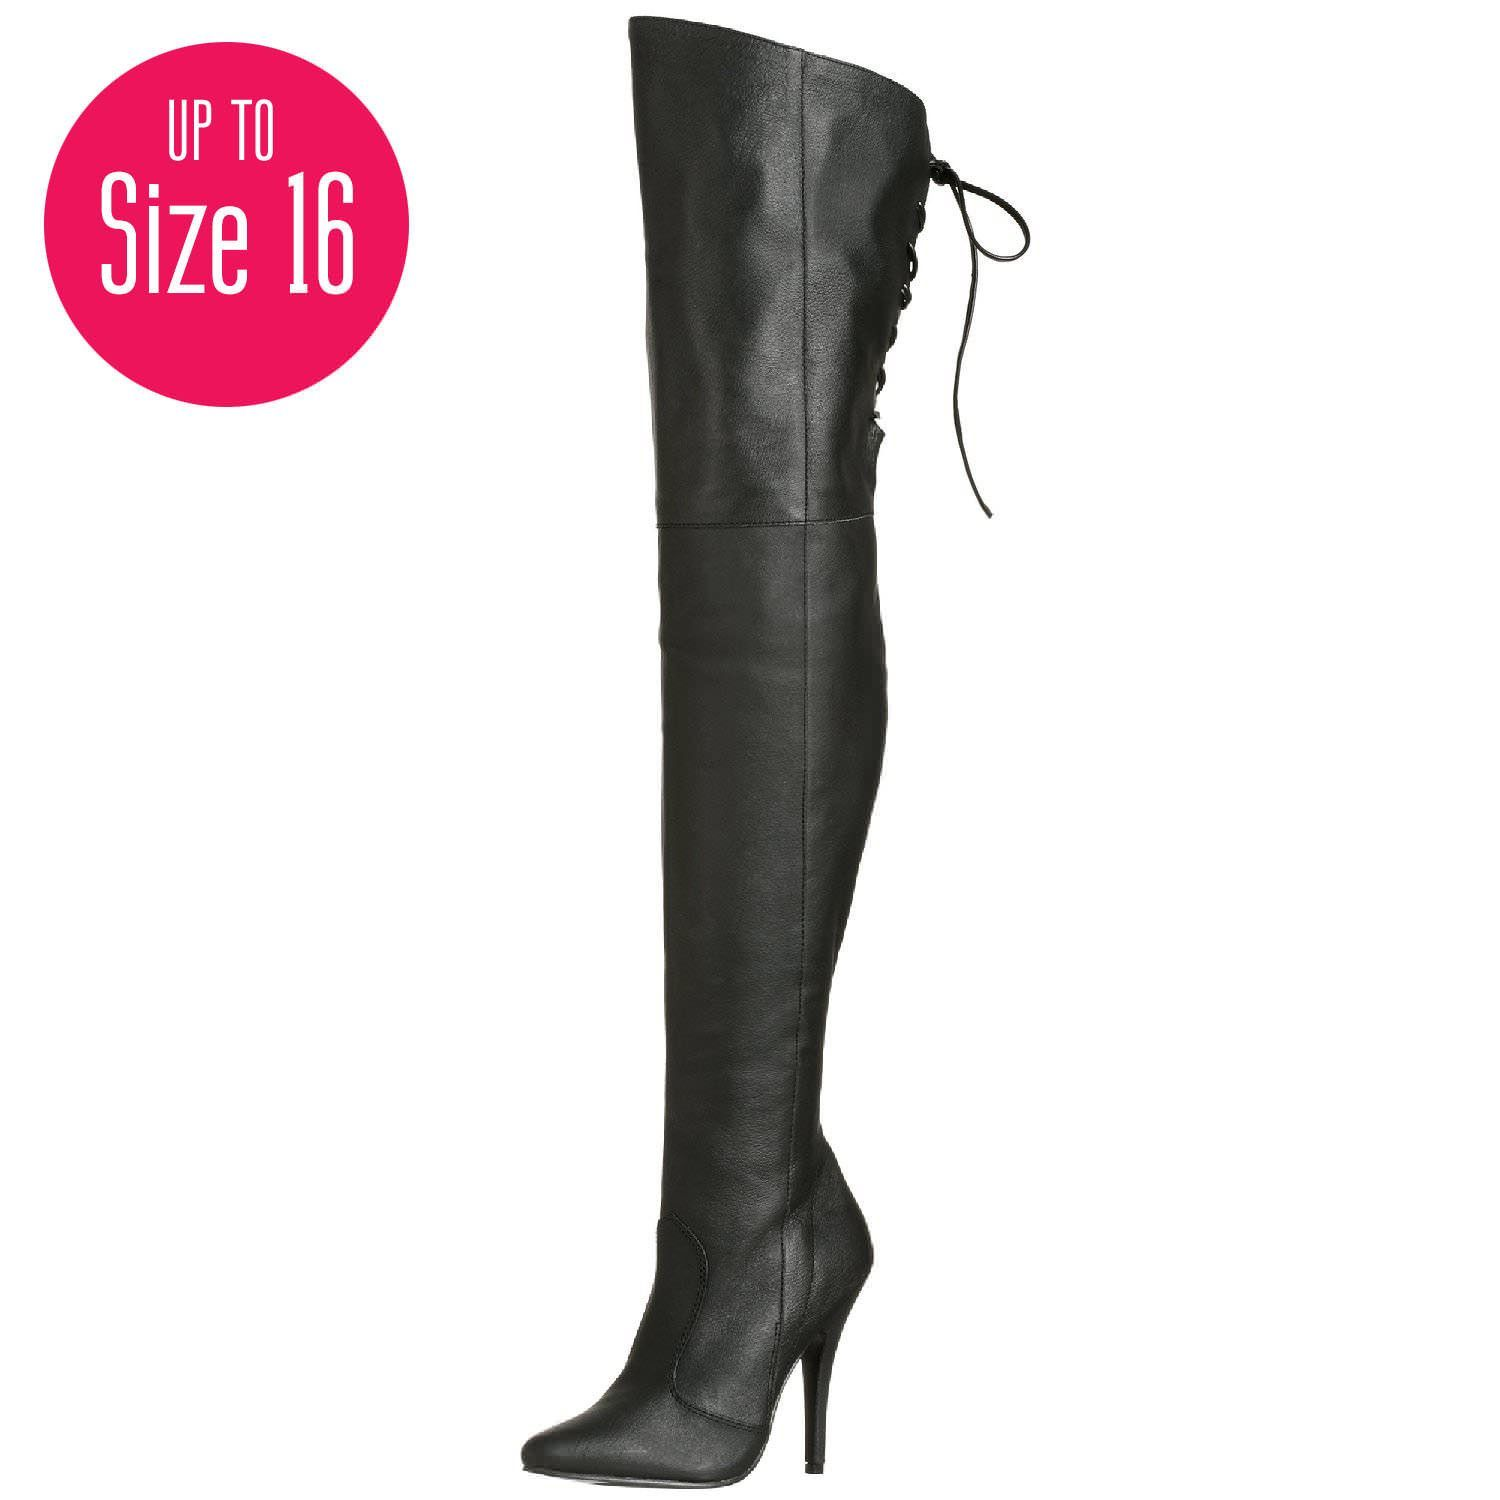 PLEASER LEGEND-8899 Black Leather Thigh High Boots